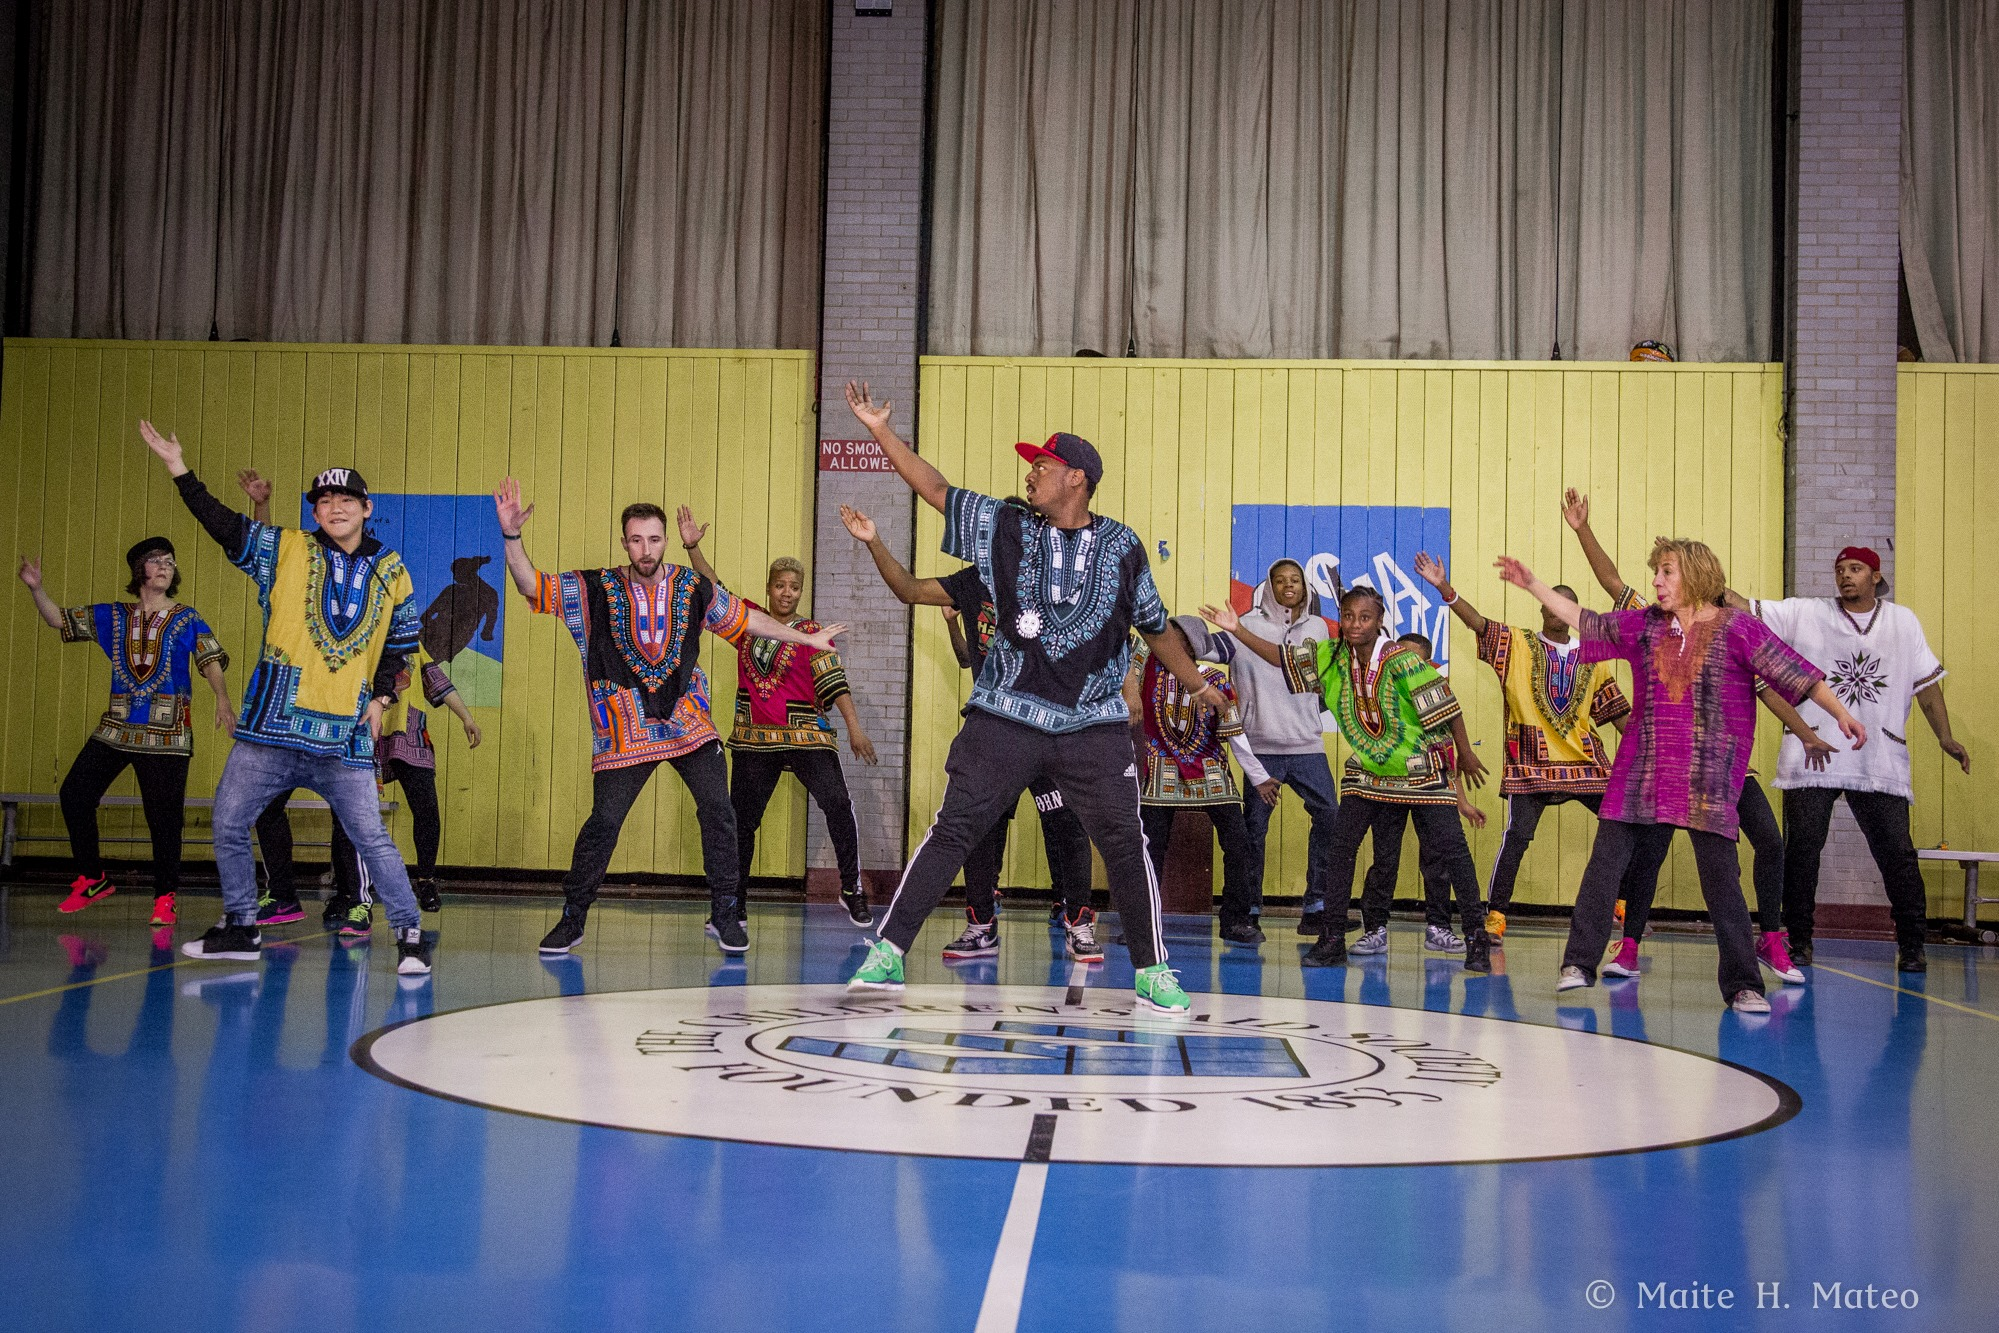 2015 Lite Feet Performance Workshop with Chrybaby Cozie at Dunlevy Milbank Center.